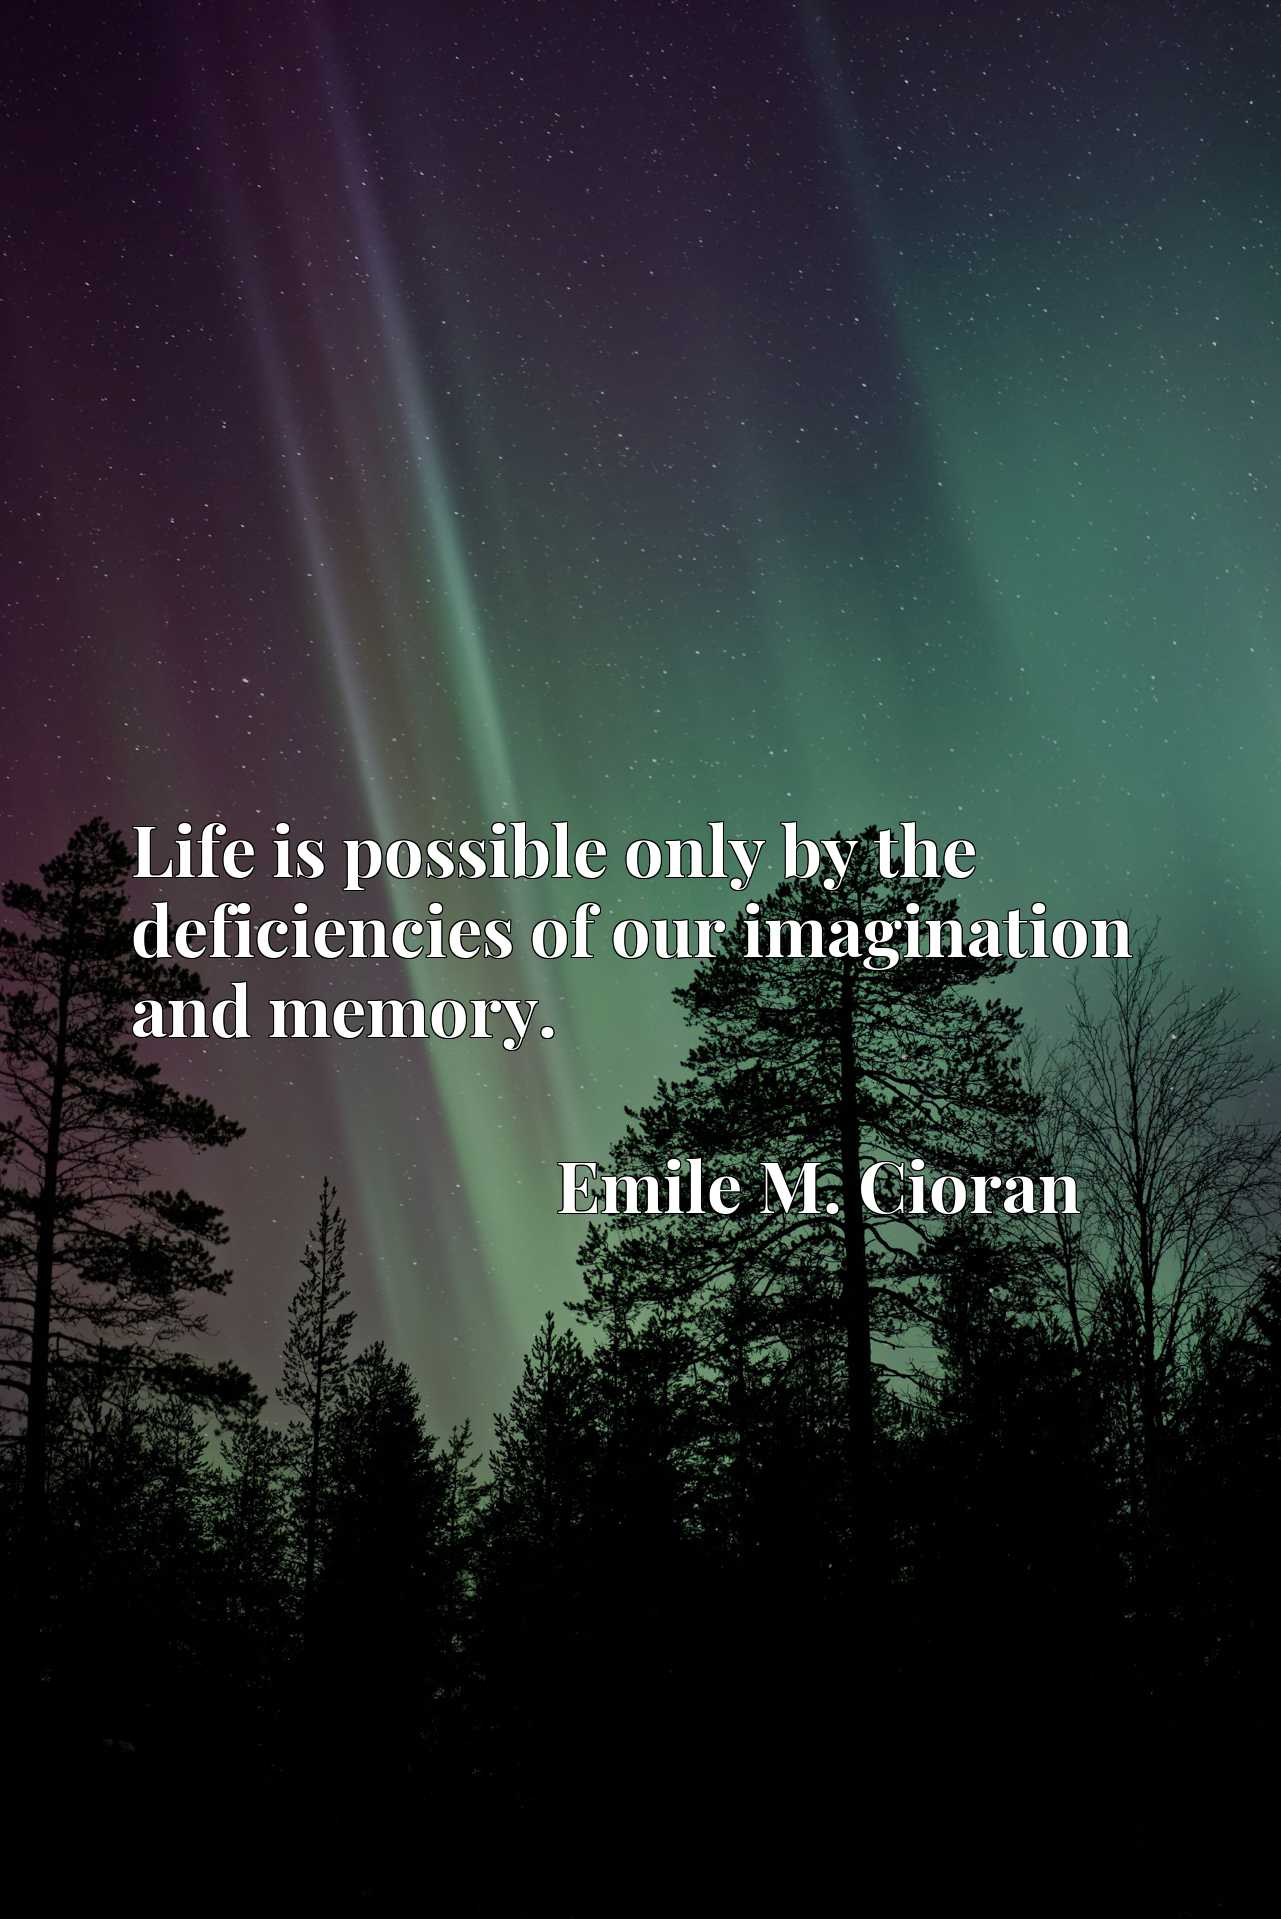 Quote Picture :Life is possible only by the deficiencies of our imagination and memory.